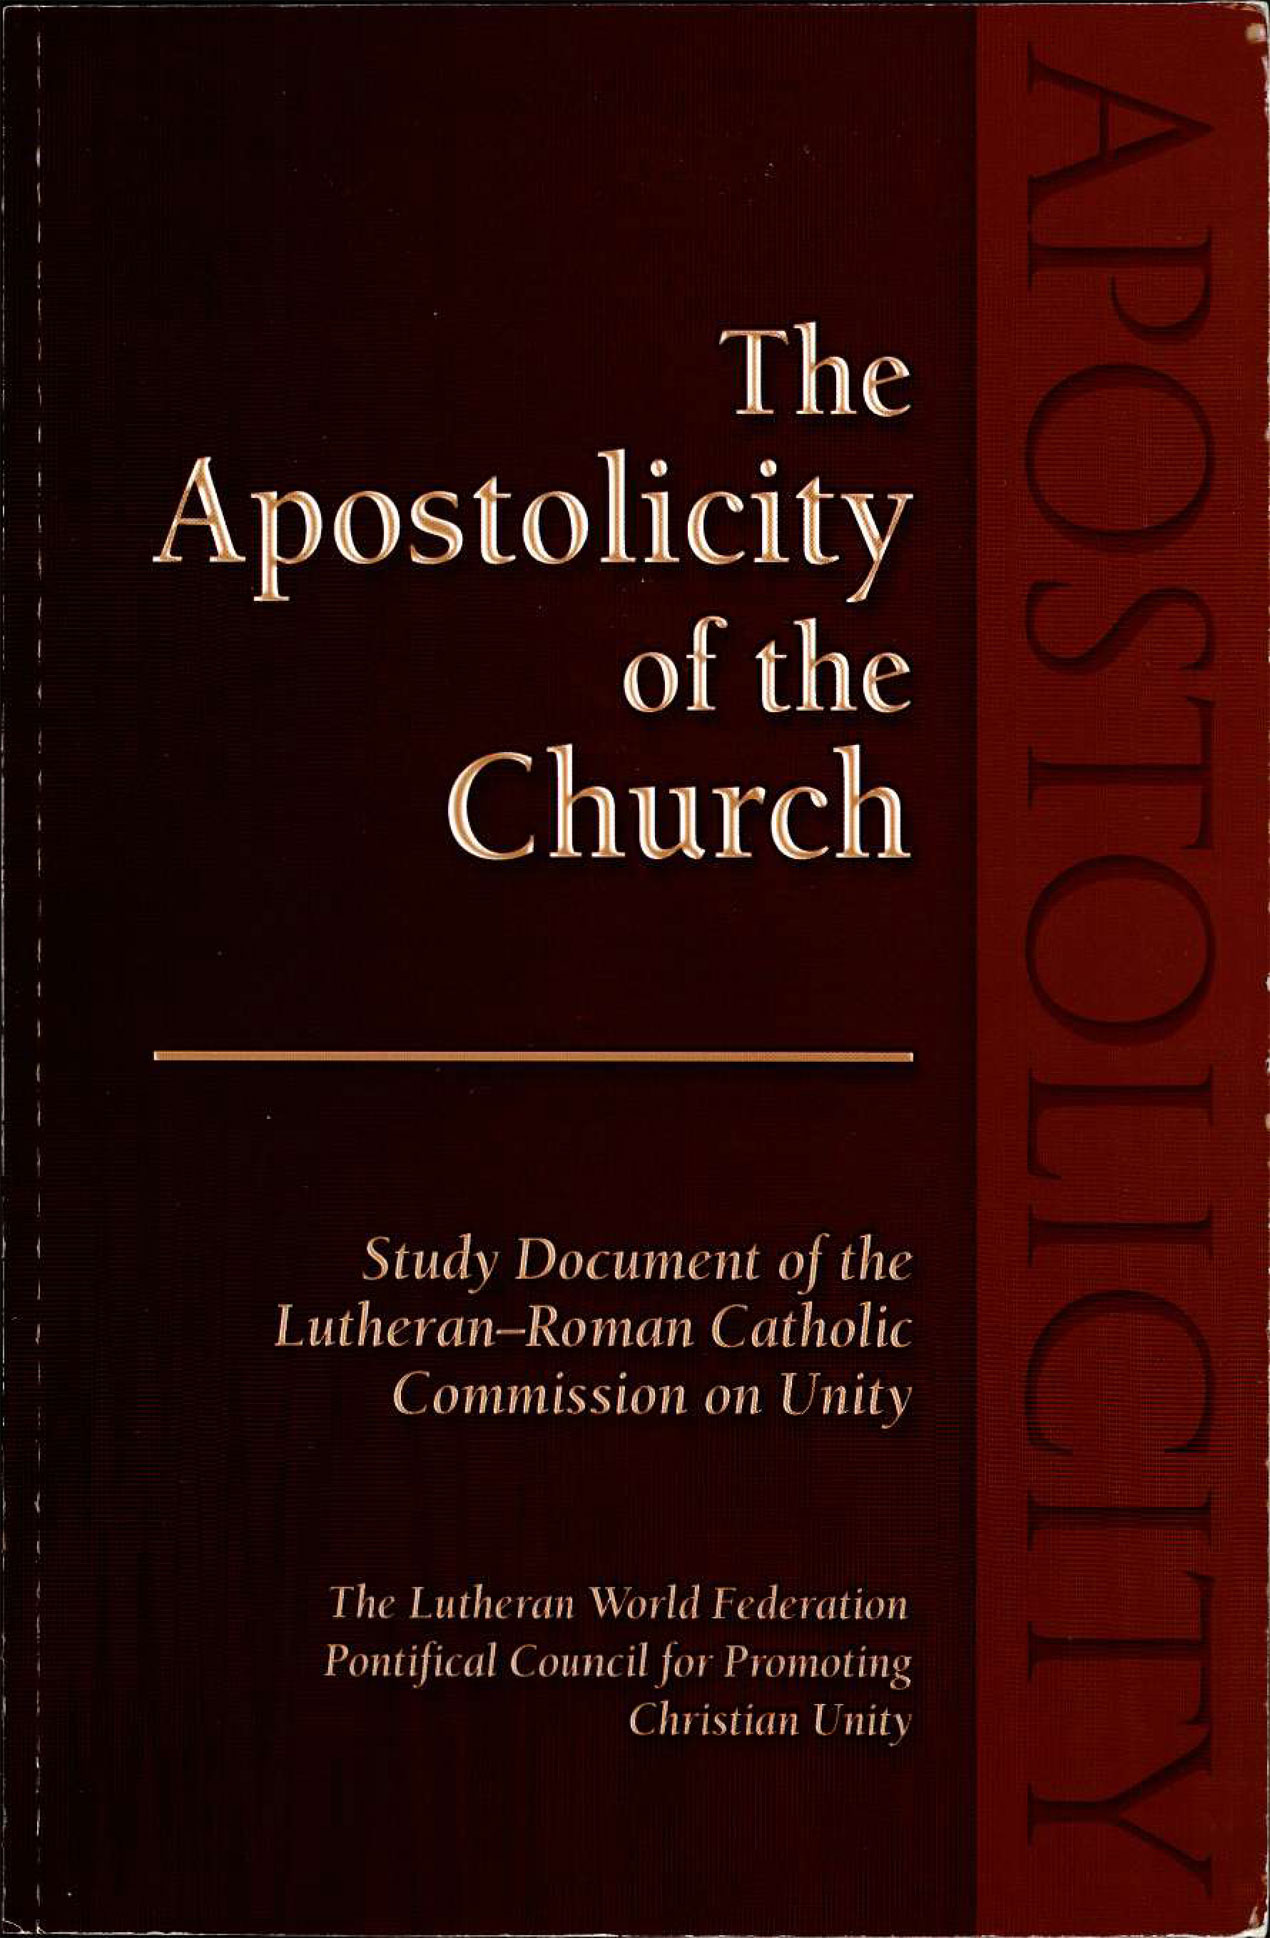 The Apostolicity of the Church Study Document of the Lutheran-Roman Catholic Commission on Unity